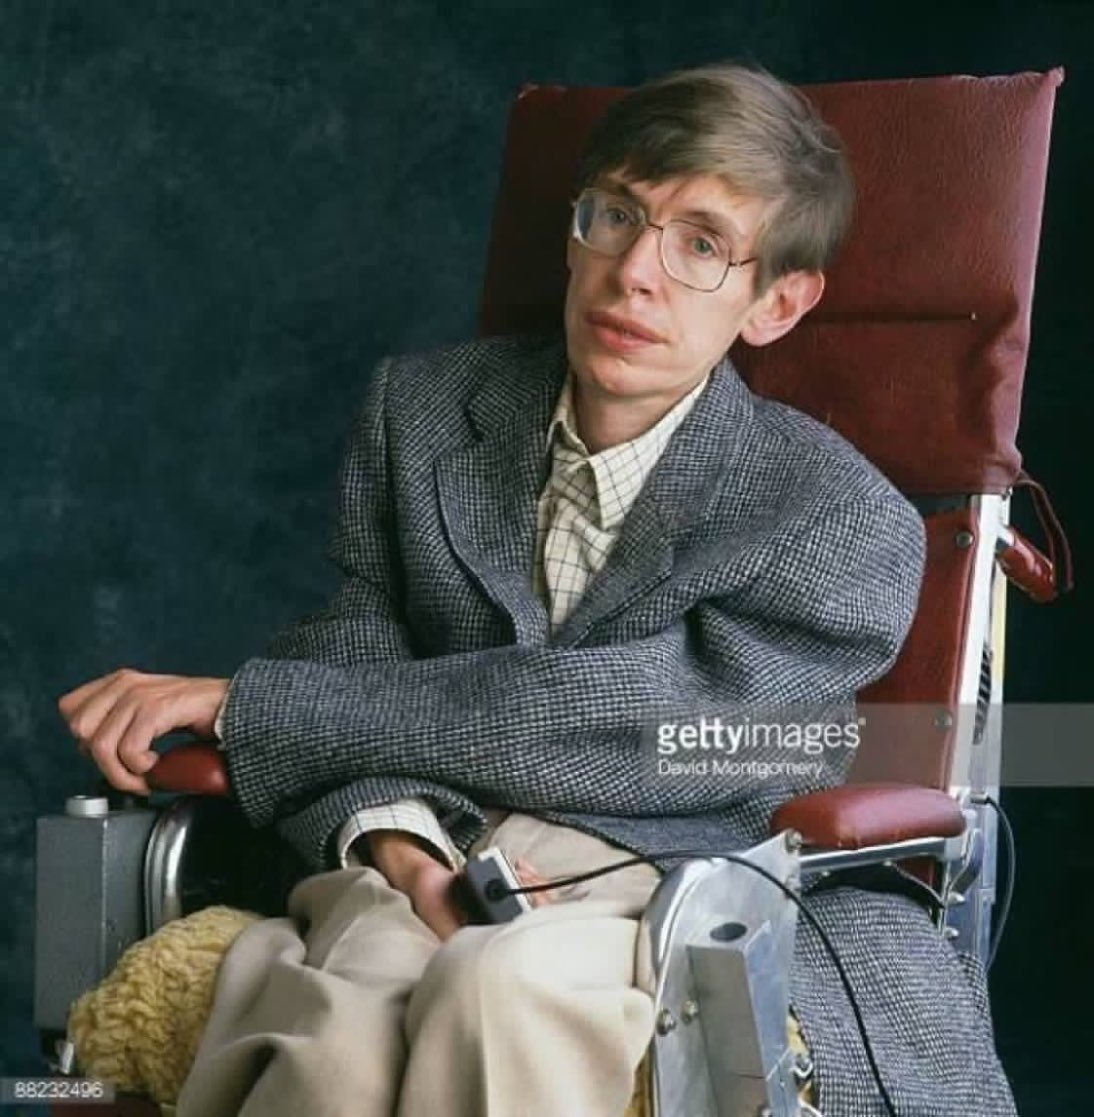 The greatest enemy of knowledge is not ignorance, it is the illusion of knowledge. —Stephen Hawking